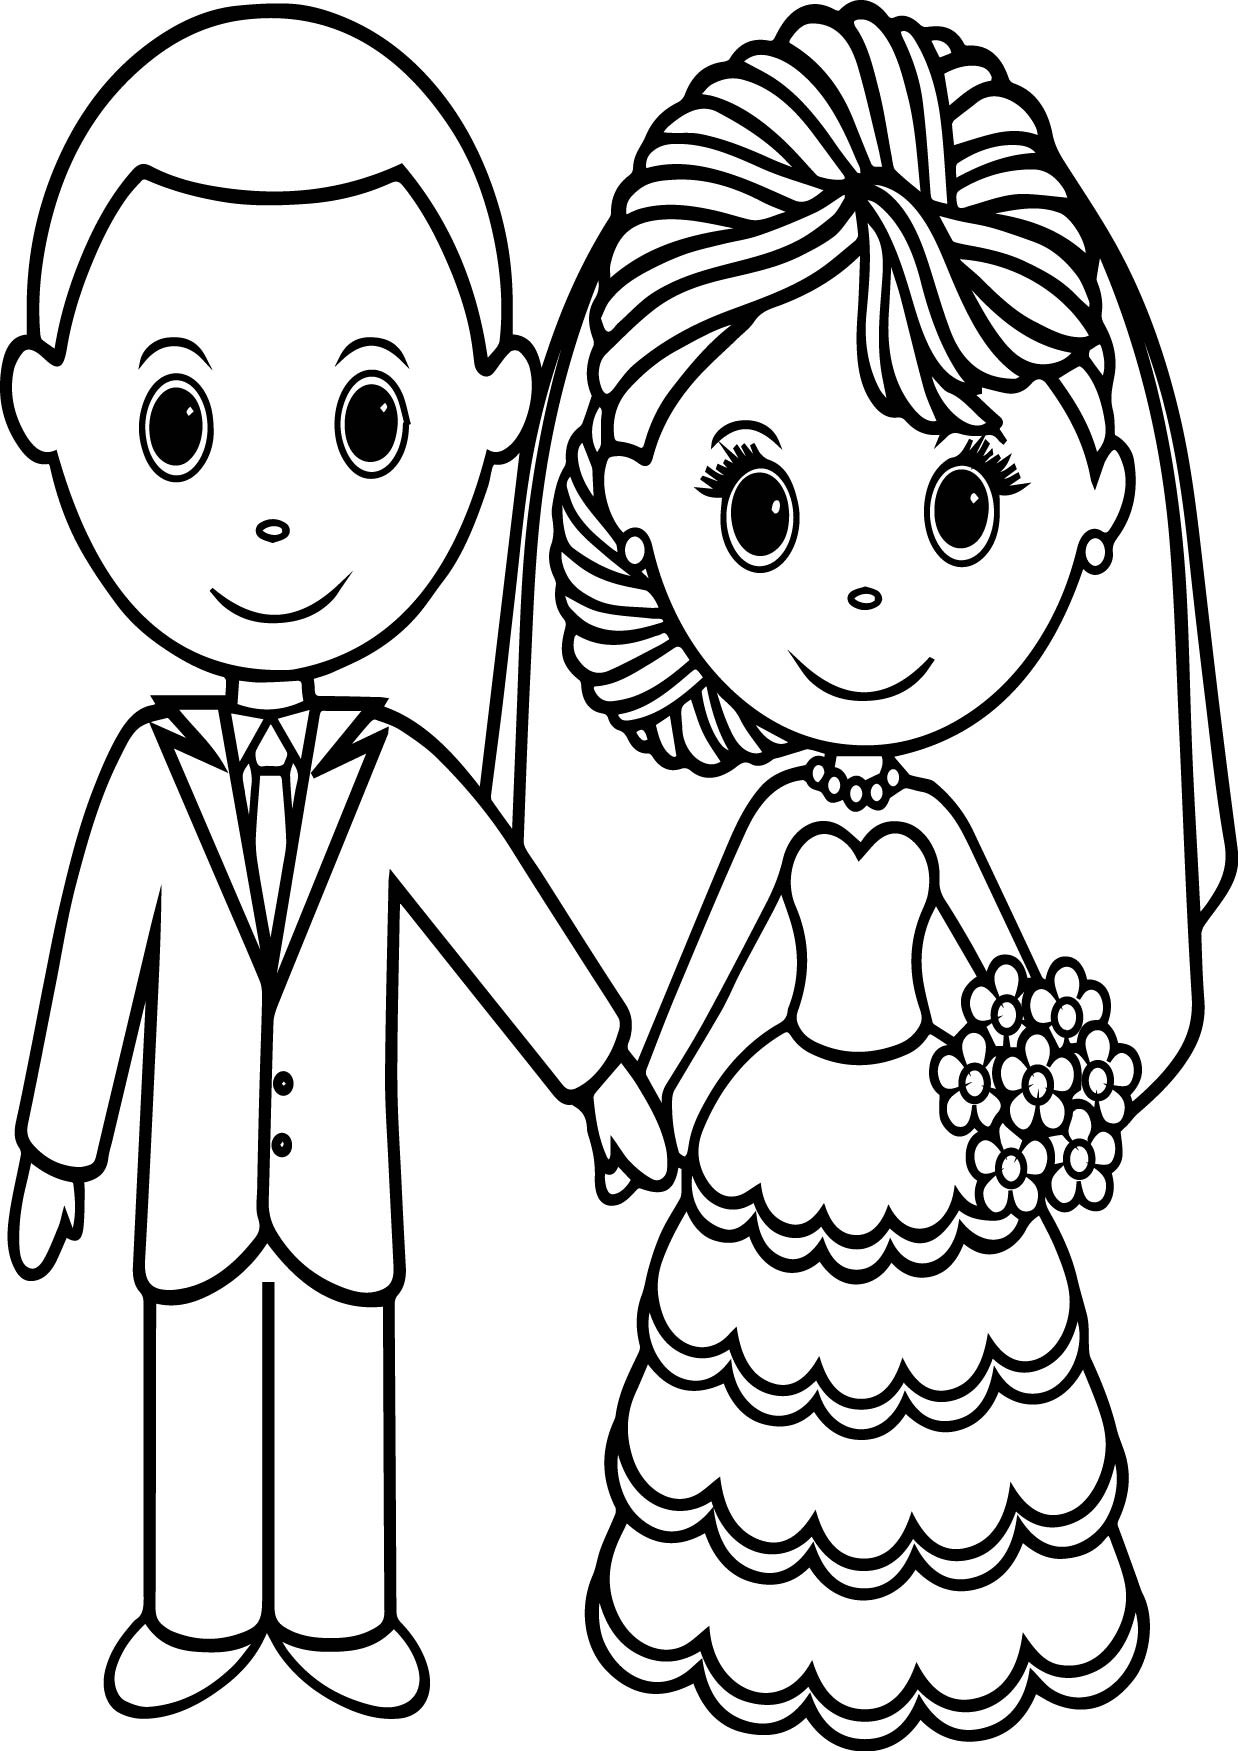 1238x1751 Free Printable Bride And Groom Coloring Pages Kids To Color Images